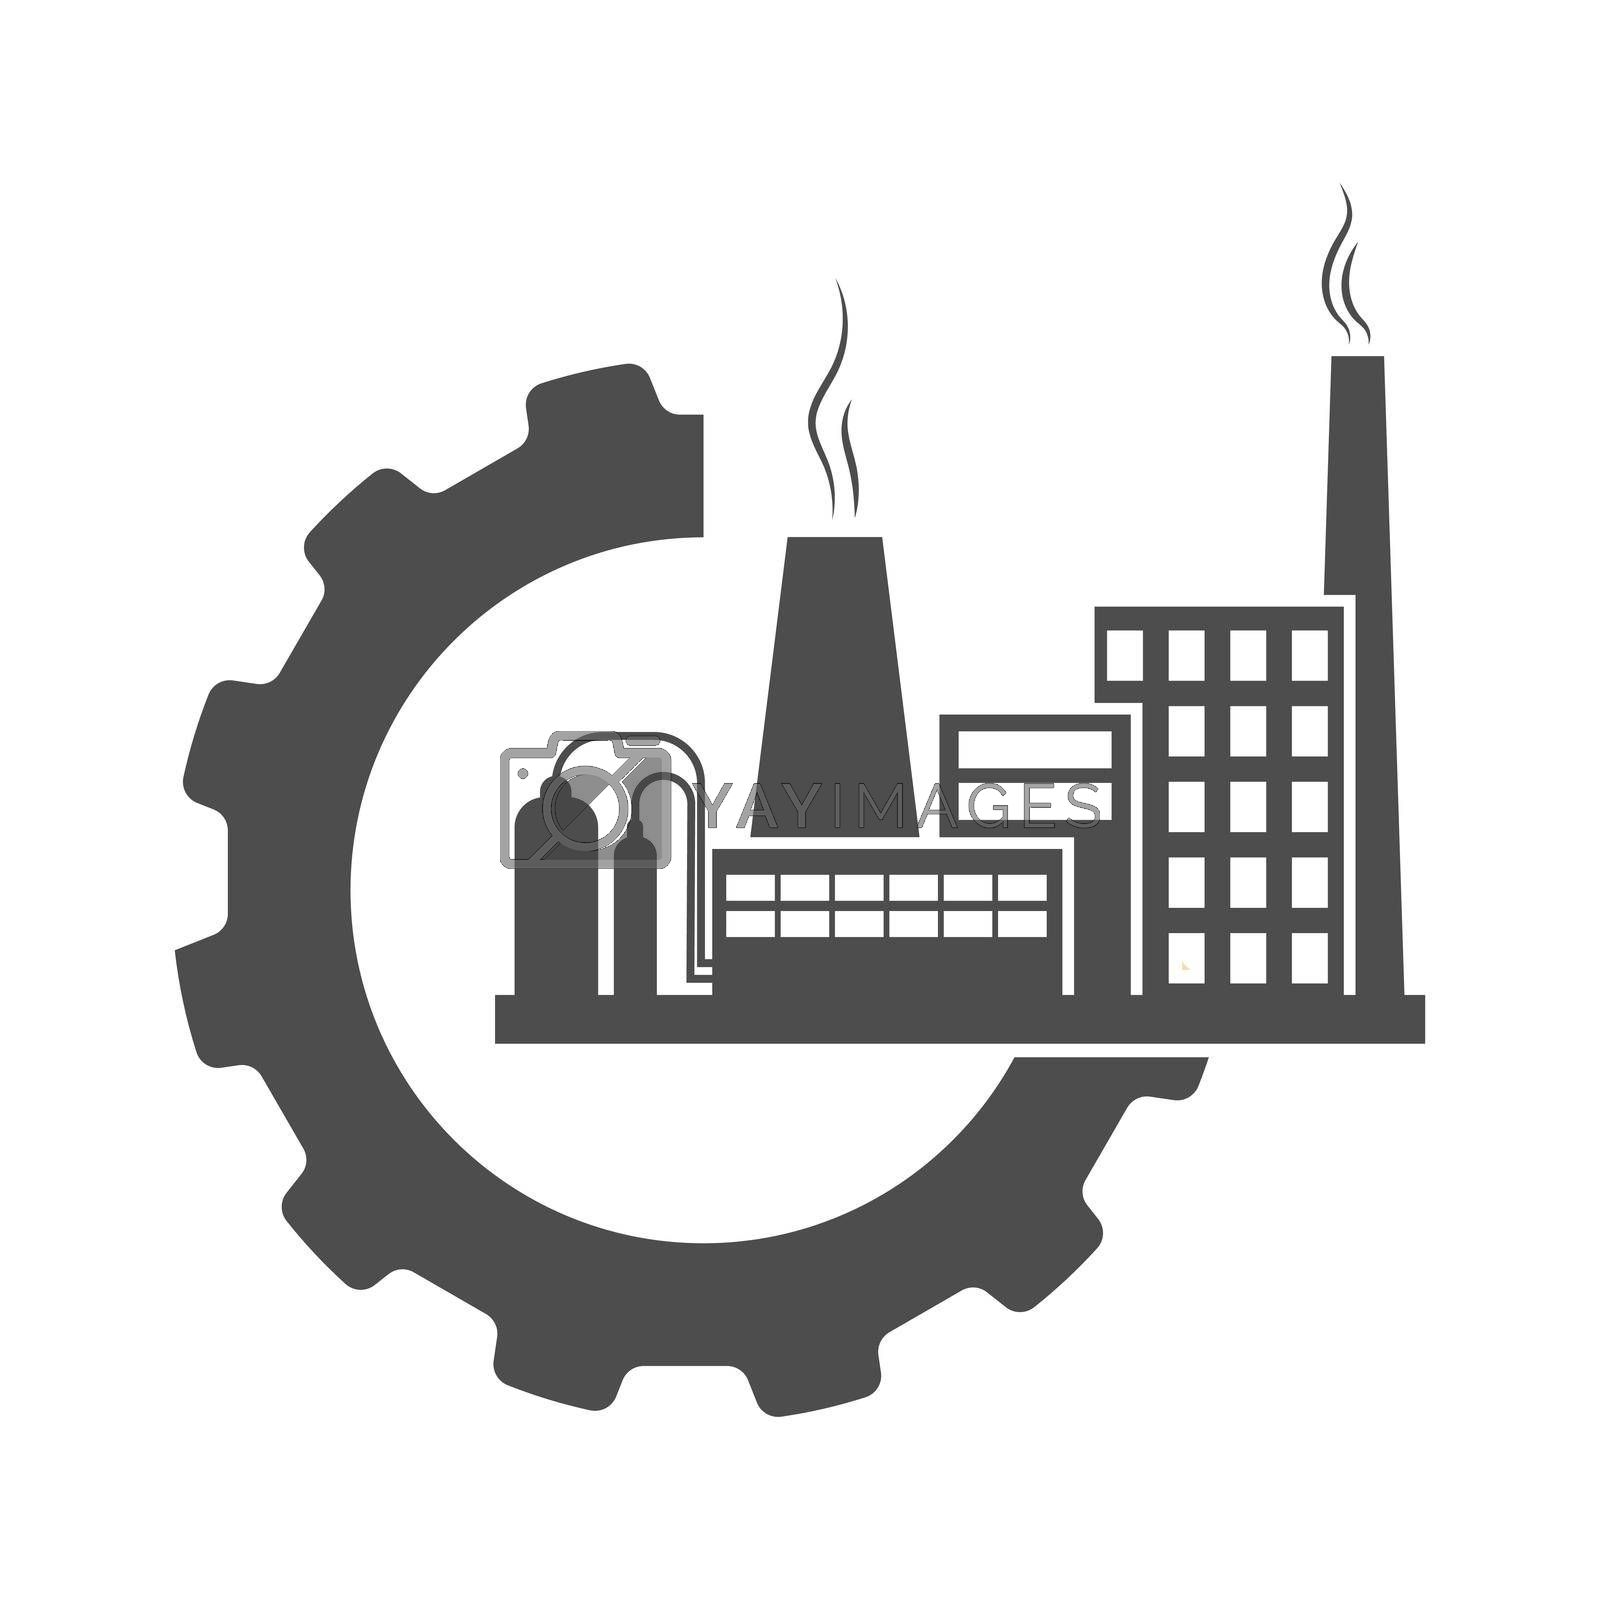 Industrial icon. A simple vector icon for websites and web applications. Flat style